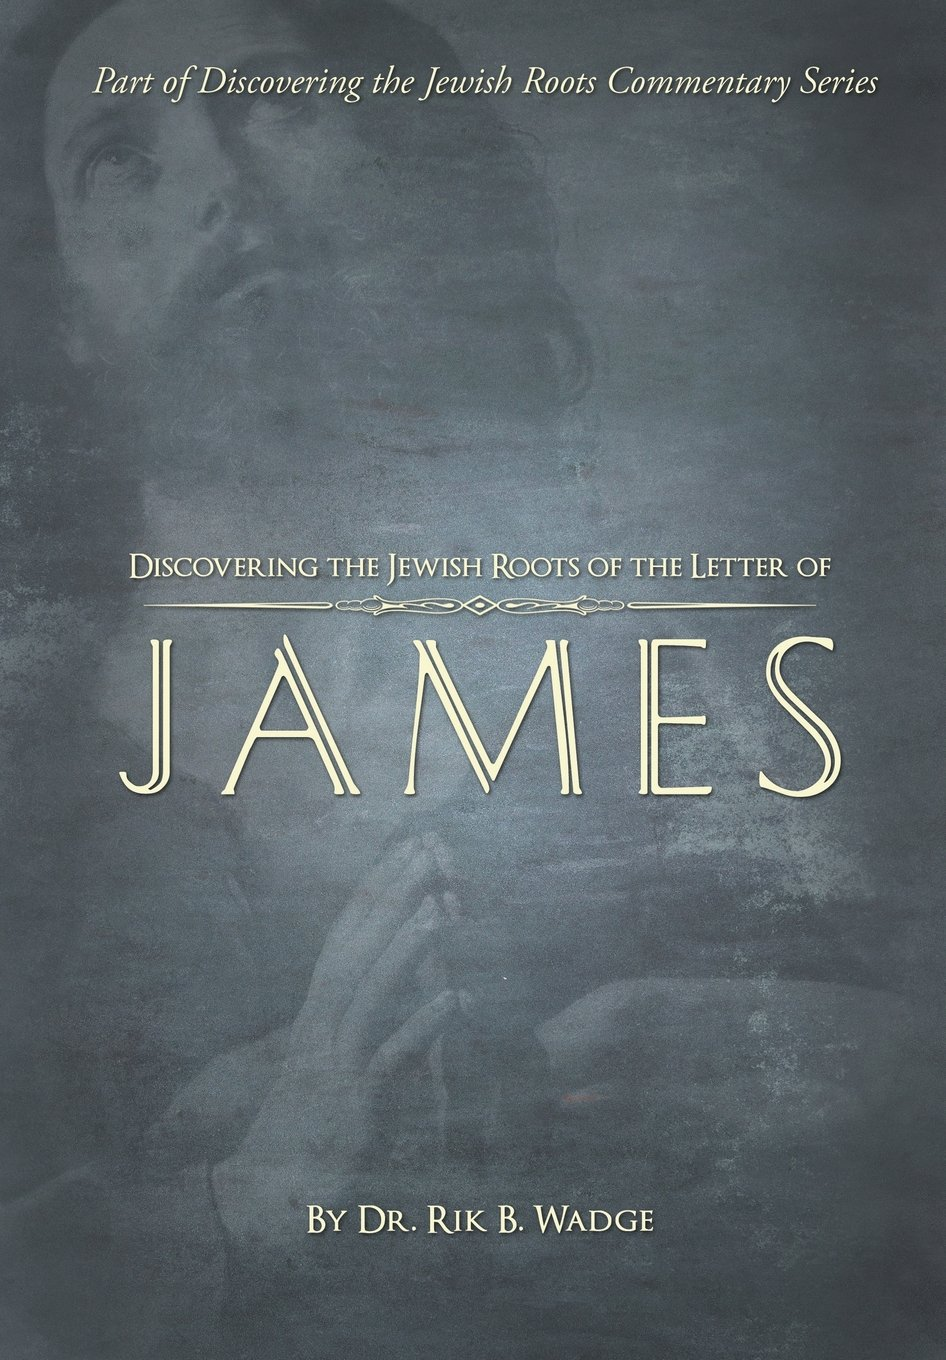 Discovering the Jewish Roots of the Letter of James: Part of the Discovering the Jewish Roots Series pdf